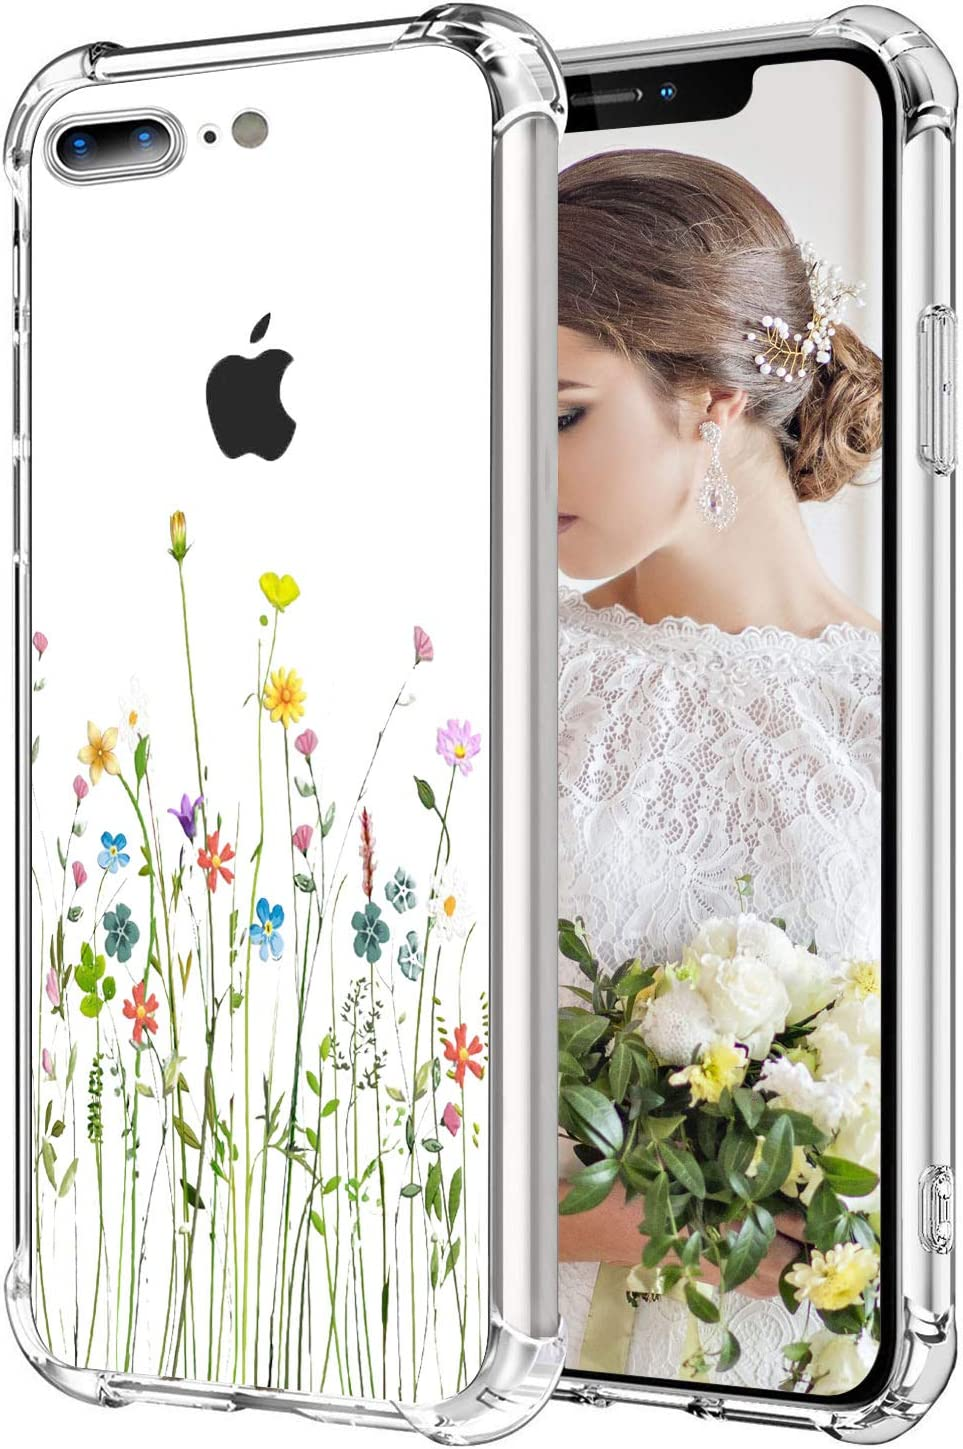 MAHYVE Case for iPhone 8 Plus, iPhone 7 Plus, Girls Crystal Clear Embossed Flower Pattern Design Soft Flexible TPU Shockproof Transparent Floral Cover, Case for iPhone 8 Plus, 7 Plus (Flower Bouquet)